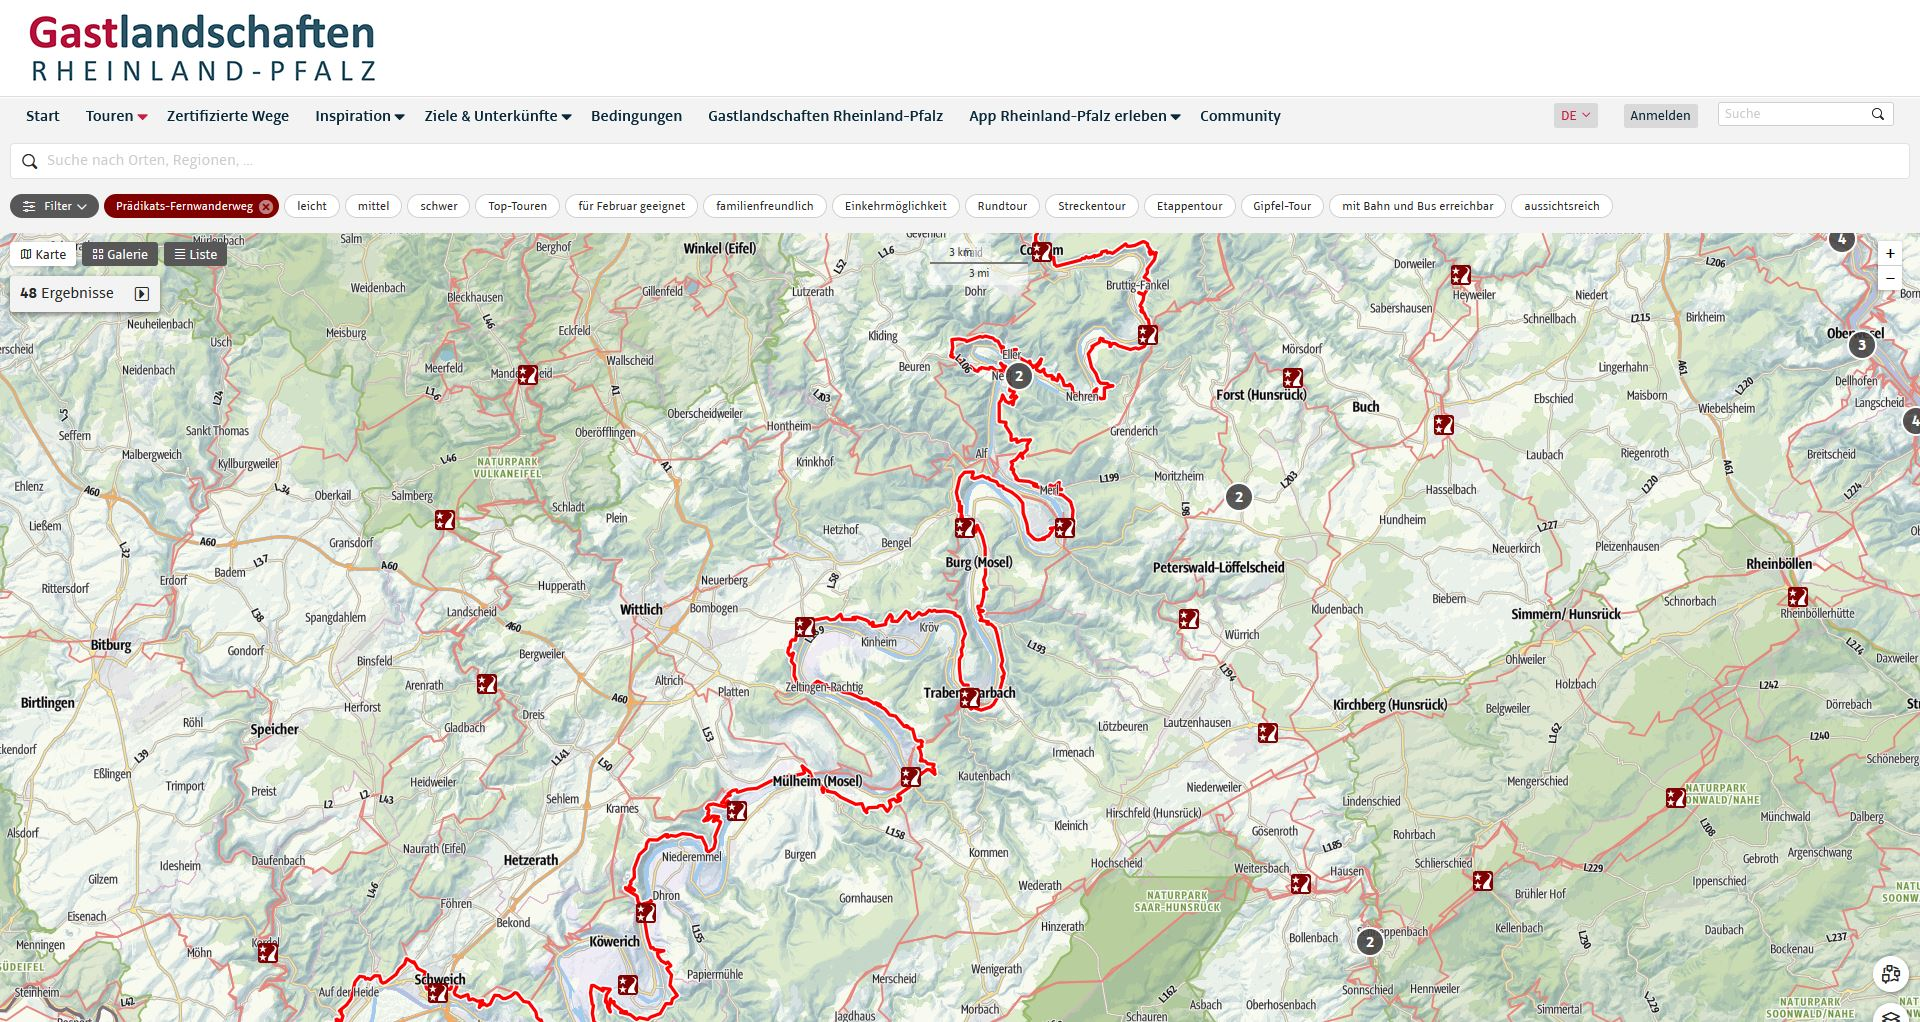 Desktop view of the Tourplanner Rhineland-Palatinate